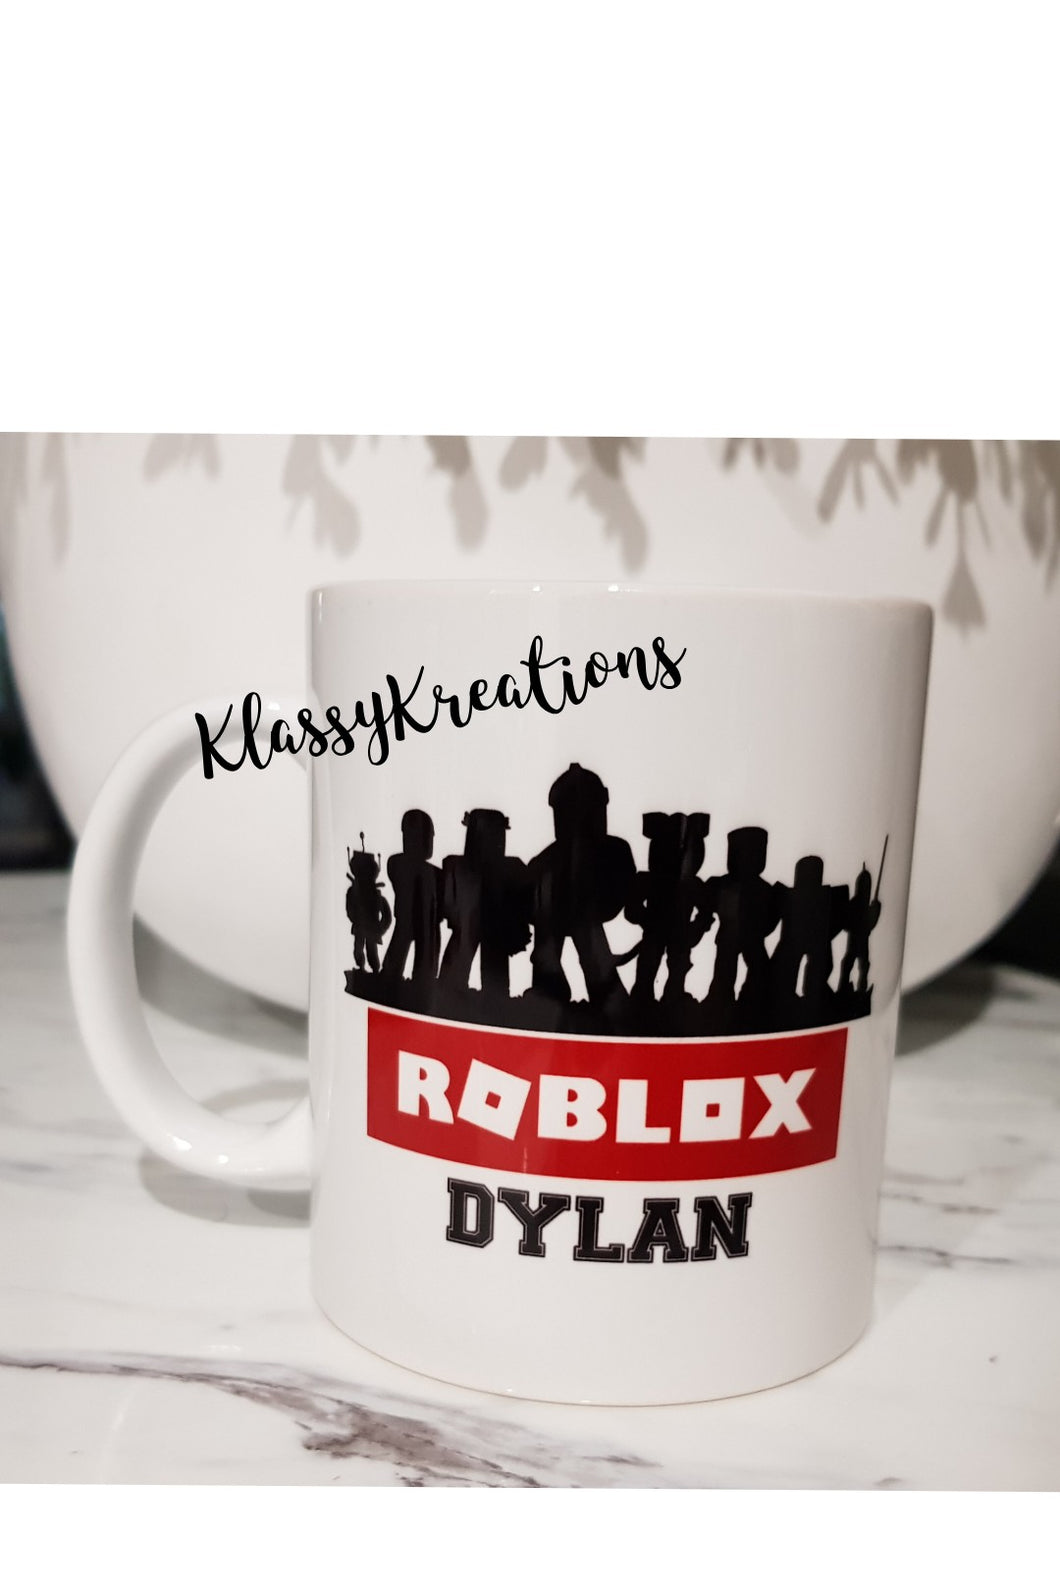 Roblox Inspired with Any Name  - white mug 11oz